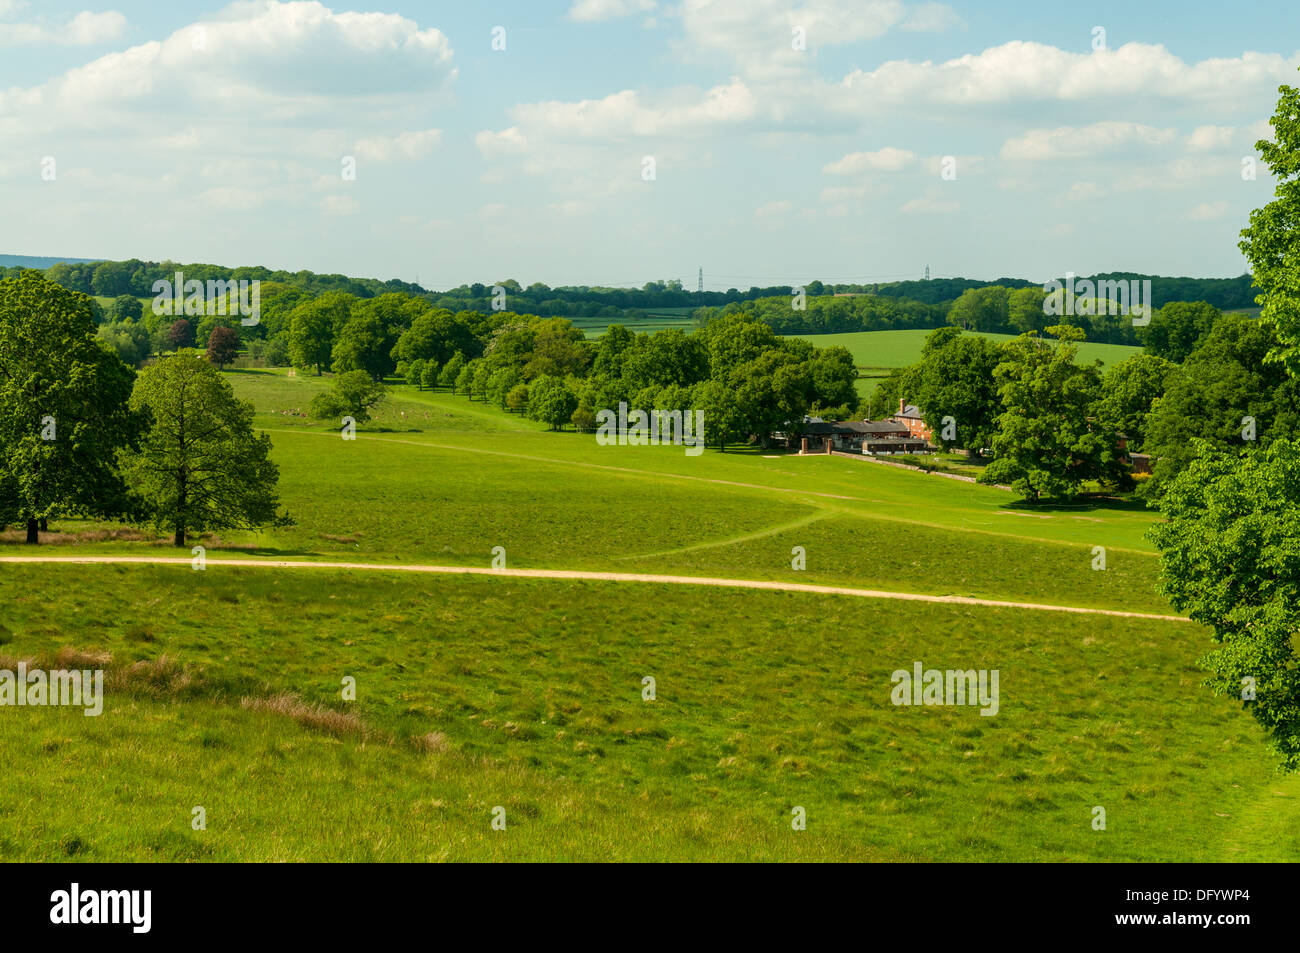 Petworth Park, Petworth, West Sussex, England - Stock Image